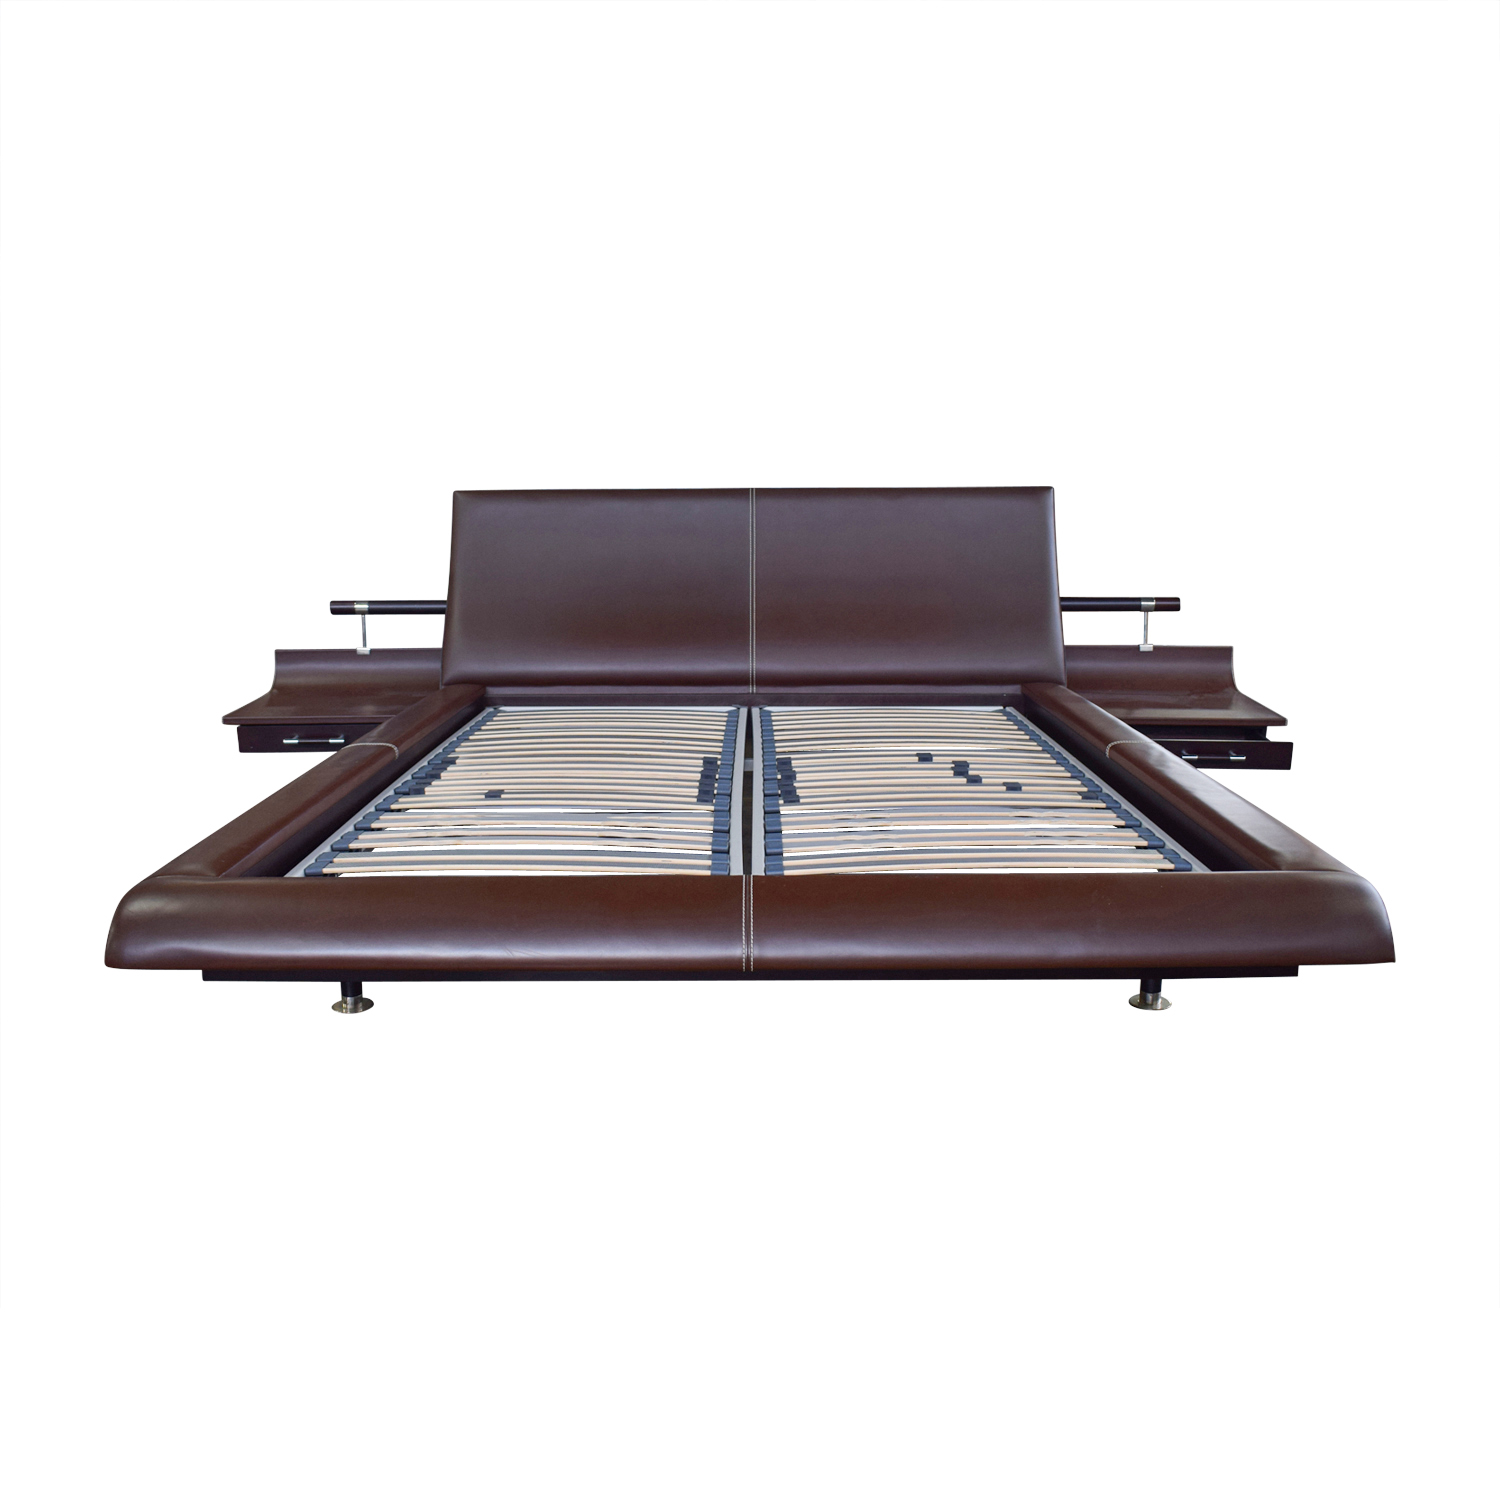 Roche Bobois Roche Bobois Vanity Bed with Nightstands Brown Leather Platform Queen Bed Frame second hand